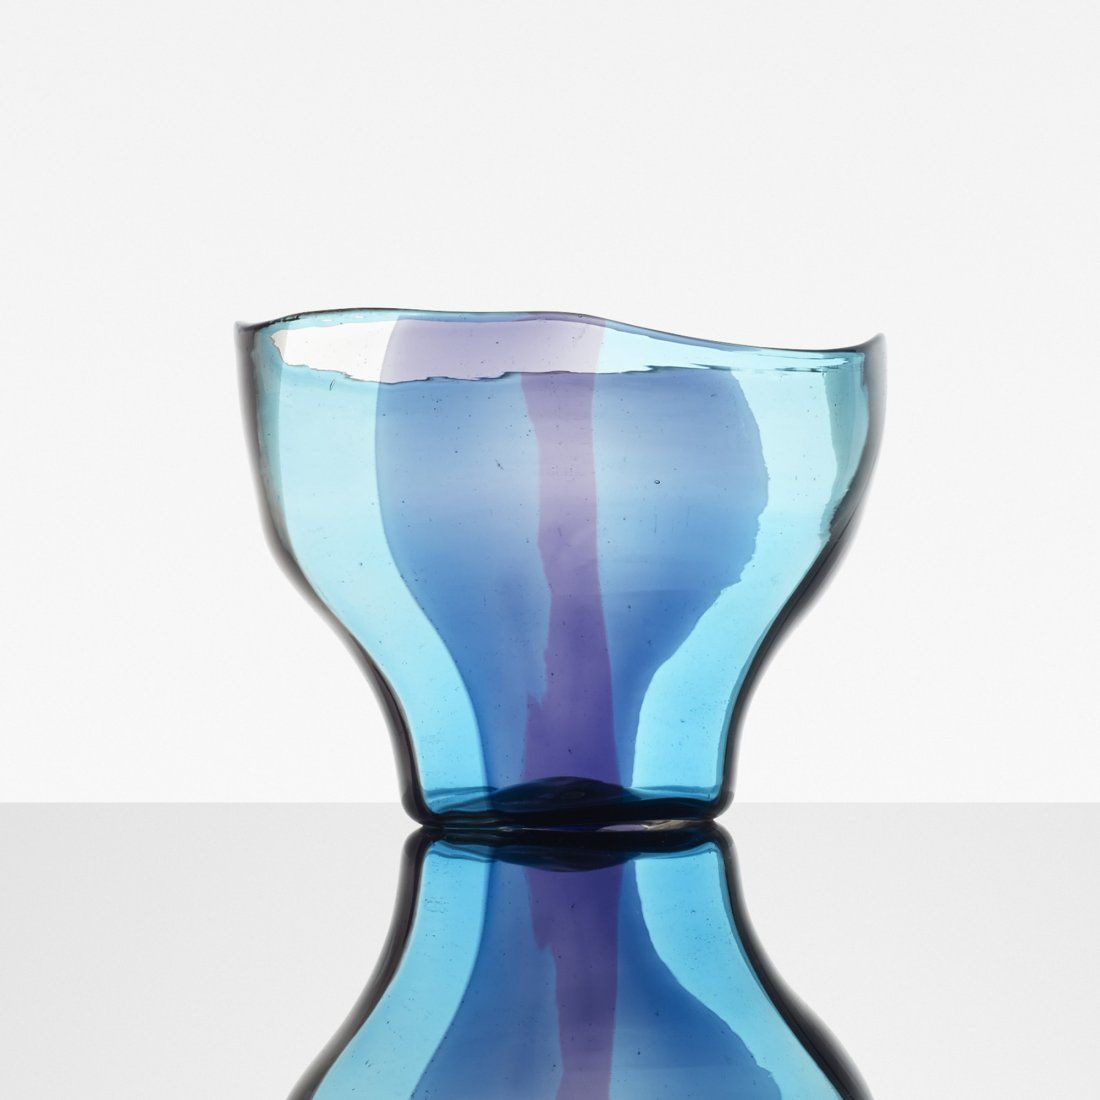 Venini Art Glass Vase Of Fulvio Bianconi and Massimo Vignelli Spicchi Bowl On Glass with Regard to Fulvio Bianconi and Massimo Glass Spicchi Bowl for Venini C1953